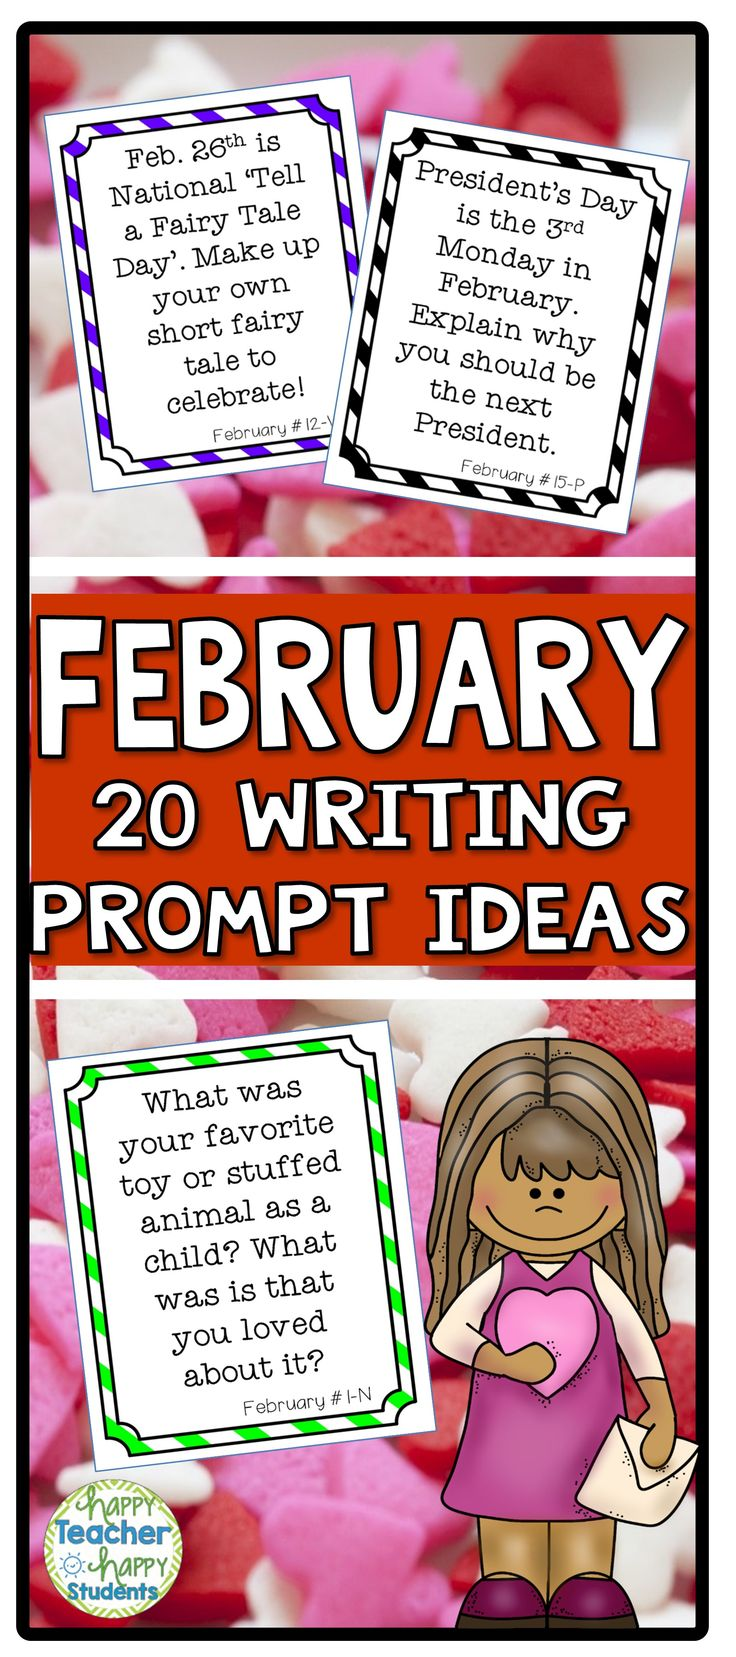 creative writing ideas for valentines day Valentine's day proposals are always a great idea — here are some valentine's  day proposal ideas that are anything but the usual.